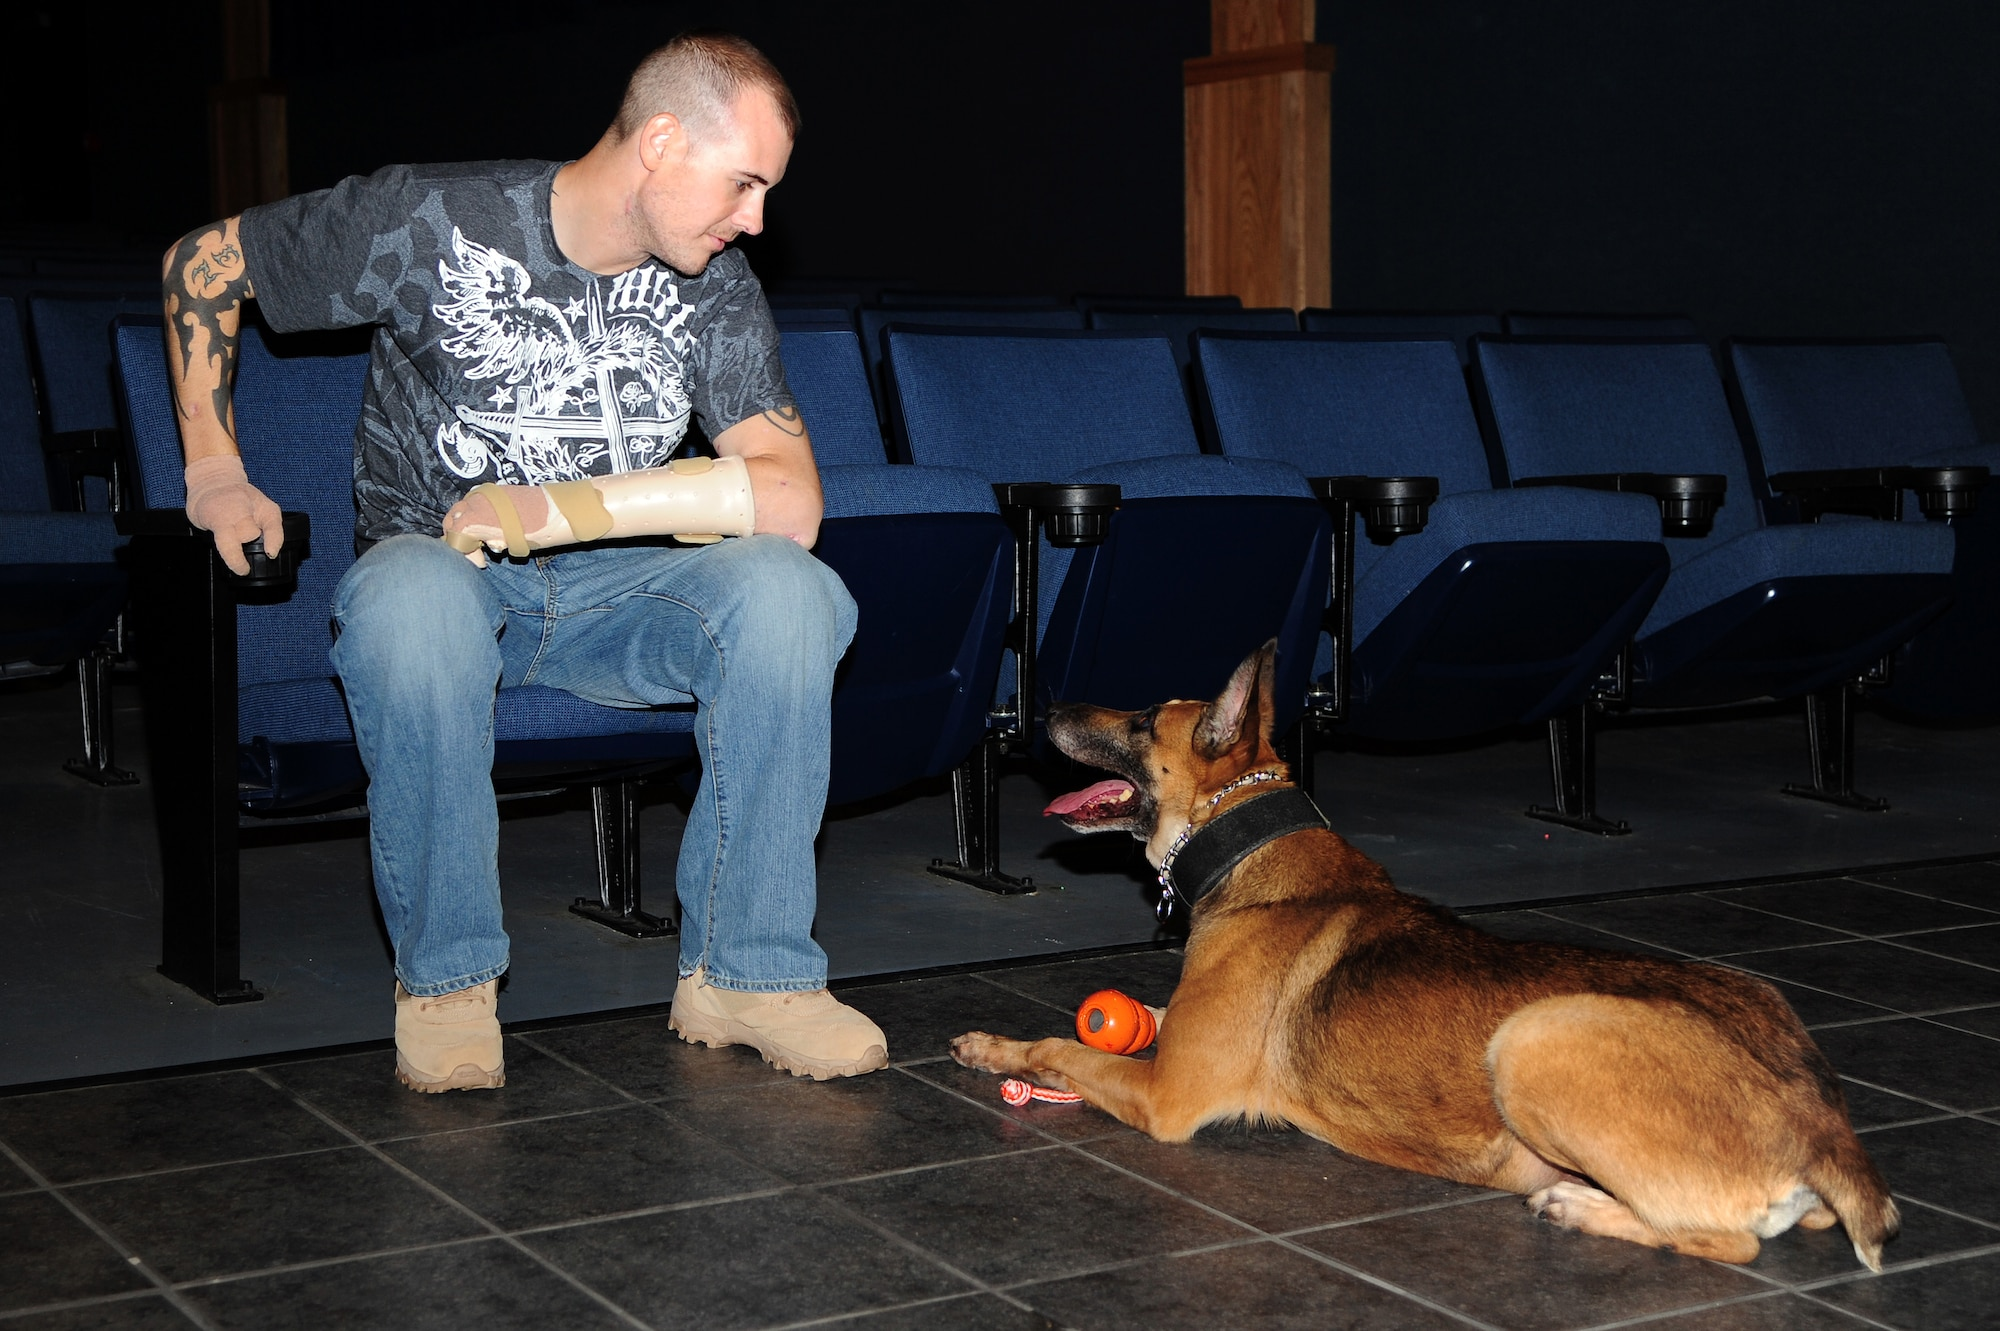 Tech Sgt. Leonard Anderson and his service dog, Azza, after returning home to Alaska in 2012. (U.S. Air Force photo/Airman 1st Class Zachary Perras)